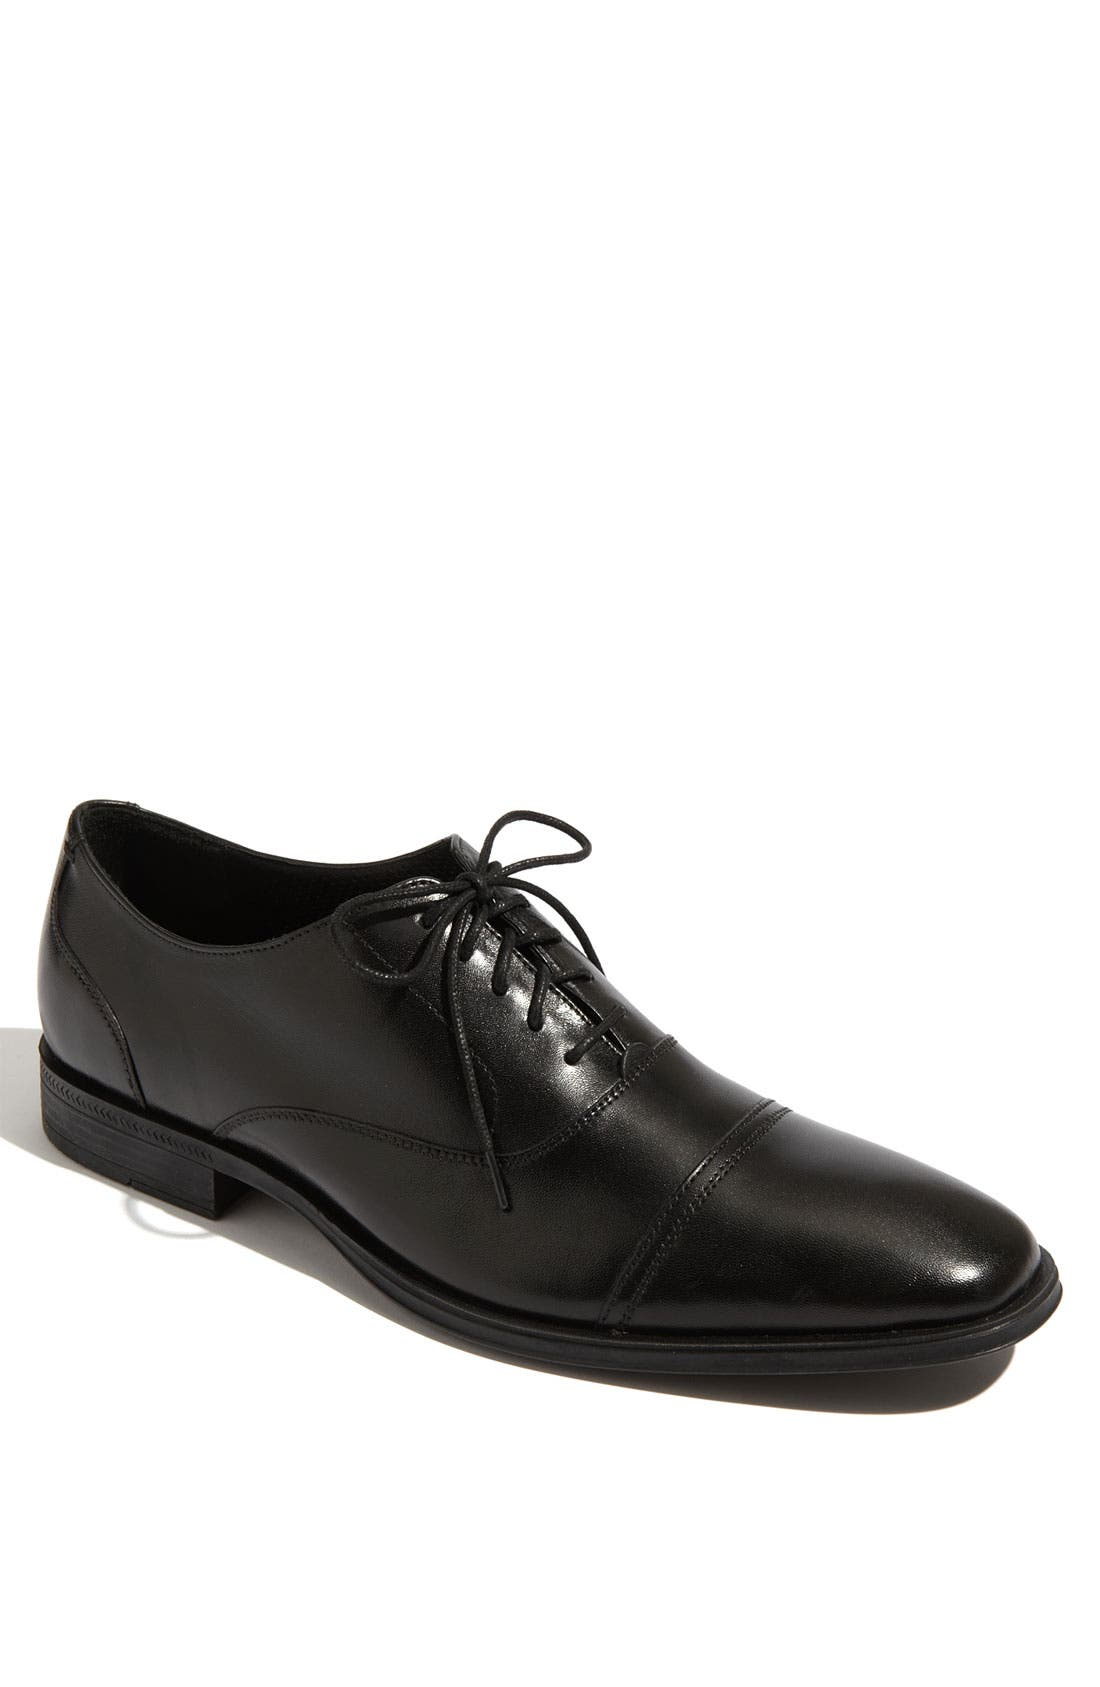 Alternate Image 1 Selected - Cole Haan 'Air Adams' Cap Toe Oxford